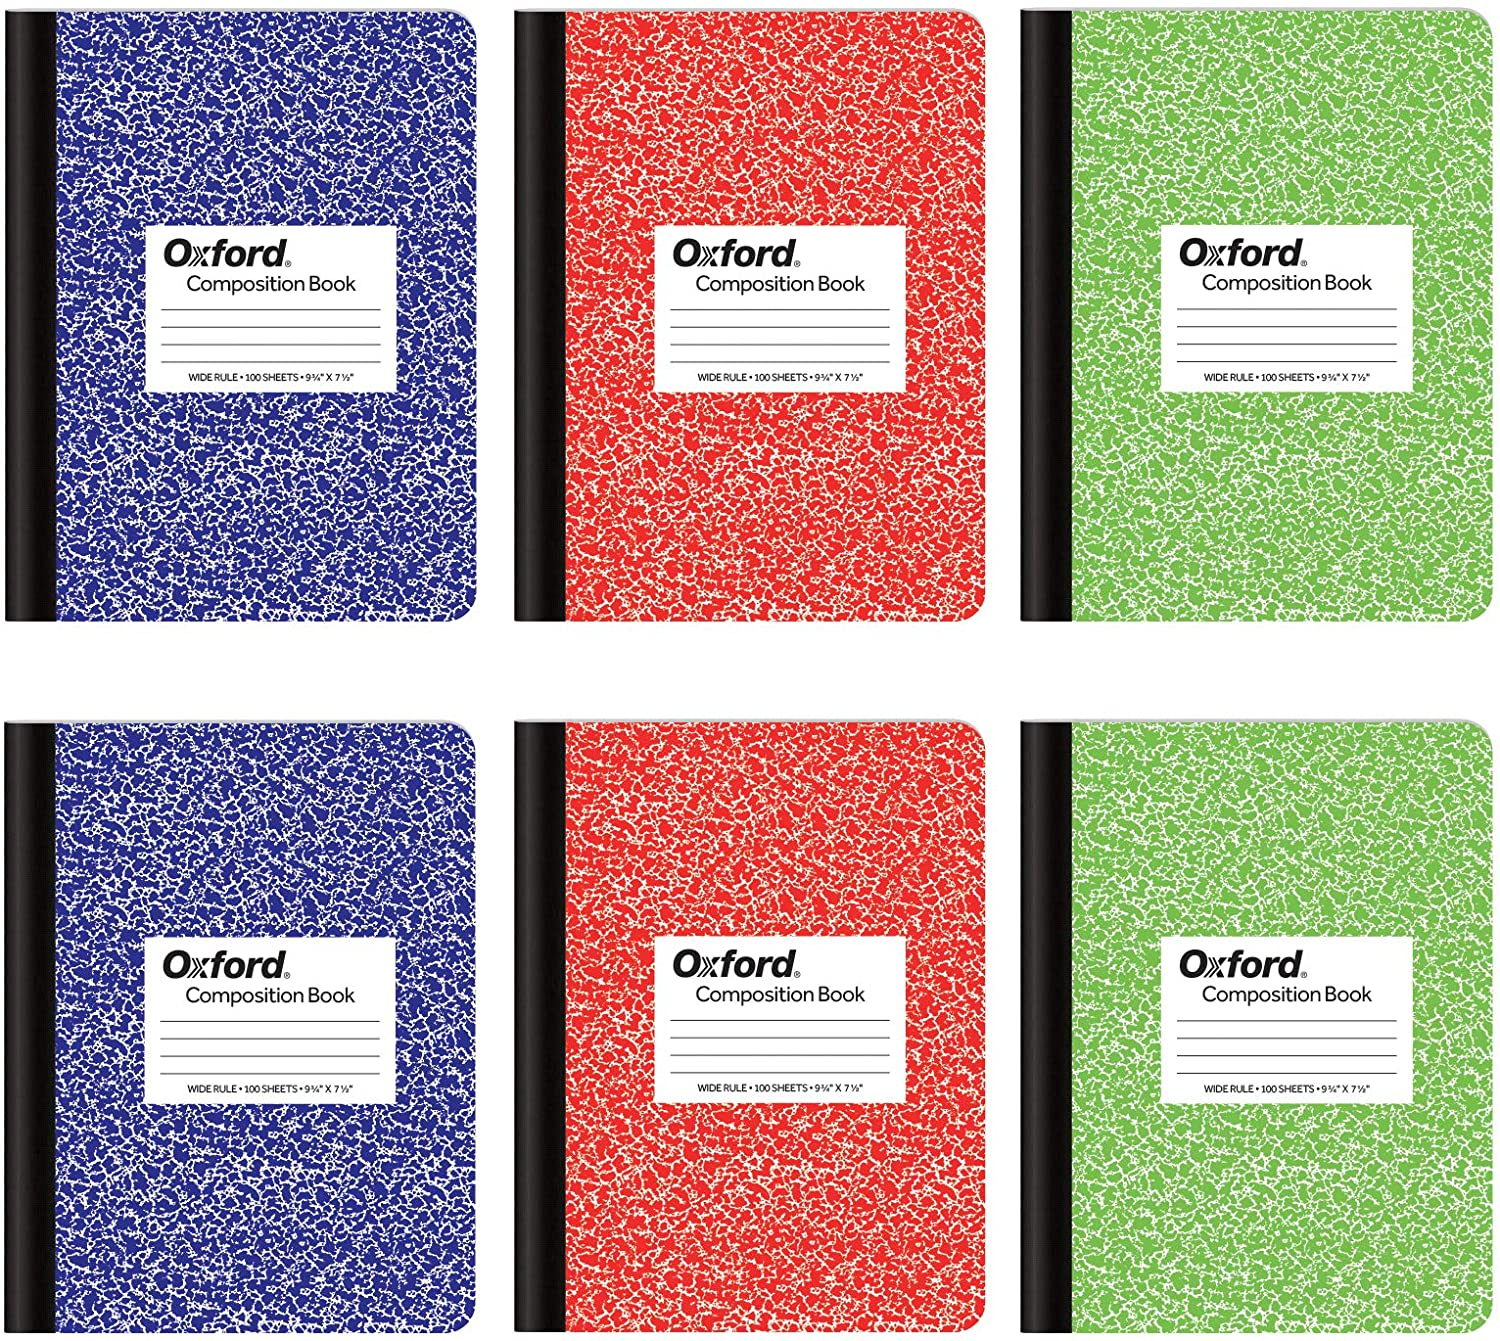 Oxford Composition Notebook 6 Pack, Wide Ruled Paper, 9-3/4 x 7-1/2 Inches, 100 Sheets, Assorted Marble Covers, 2 Each: Blue, Green, Red (63762)